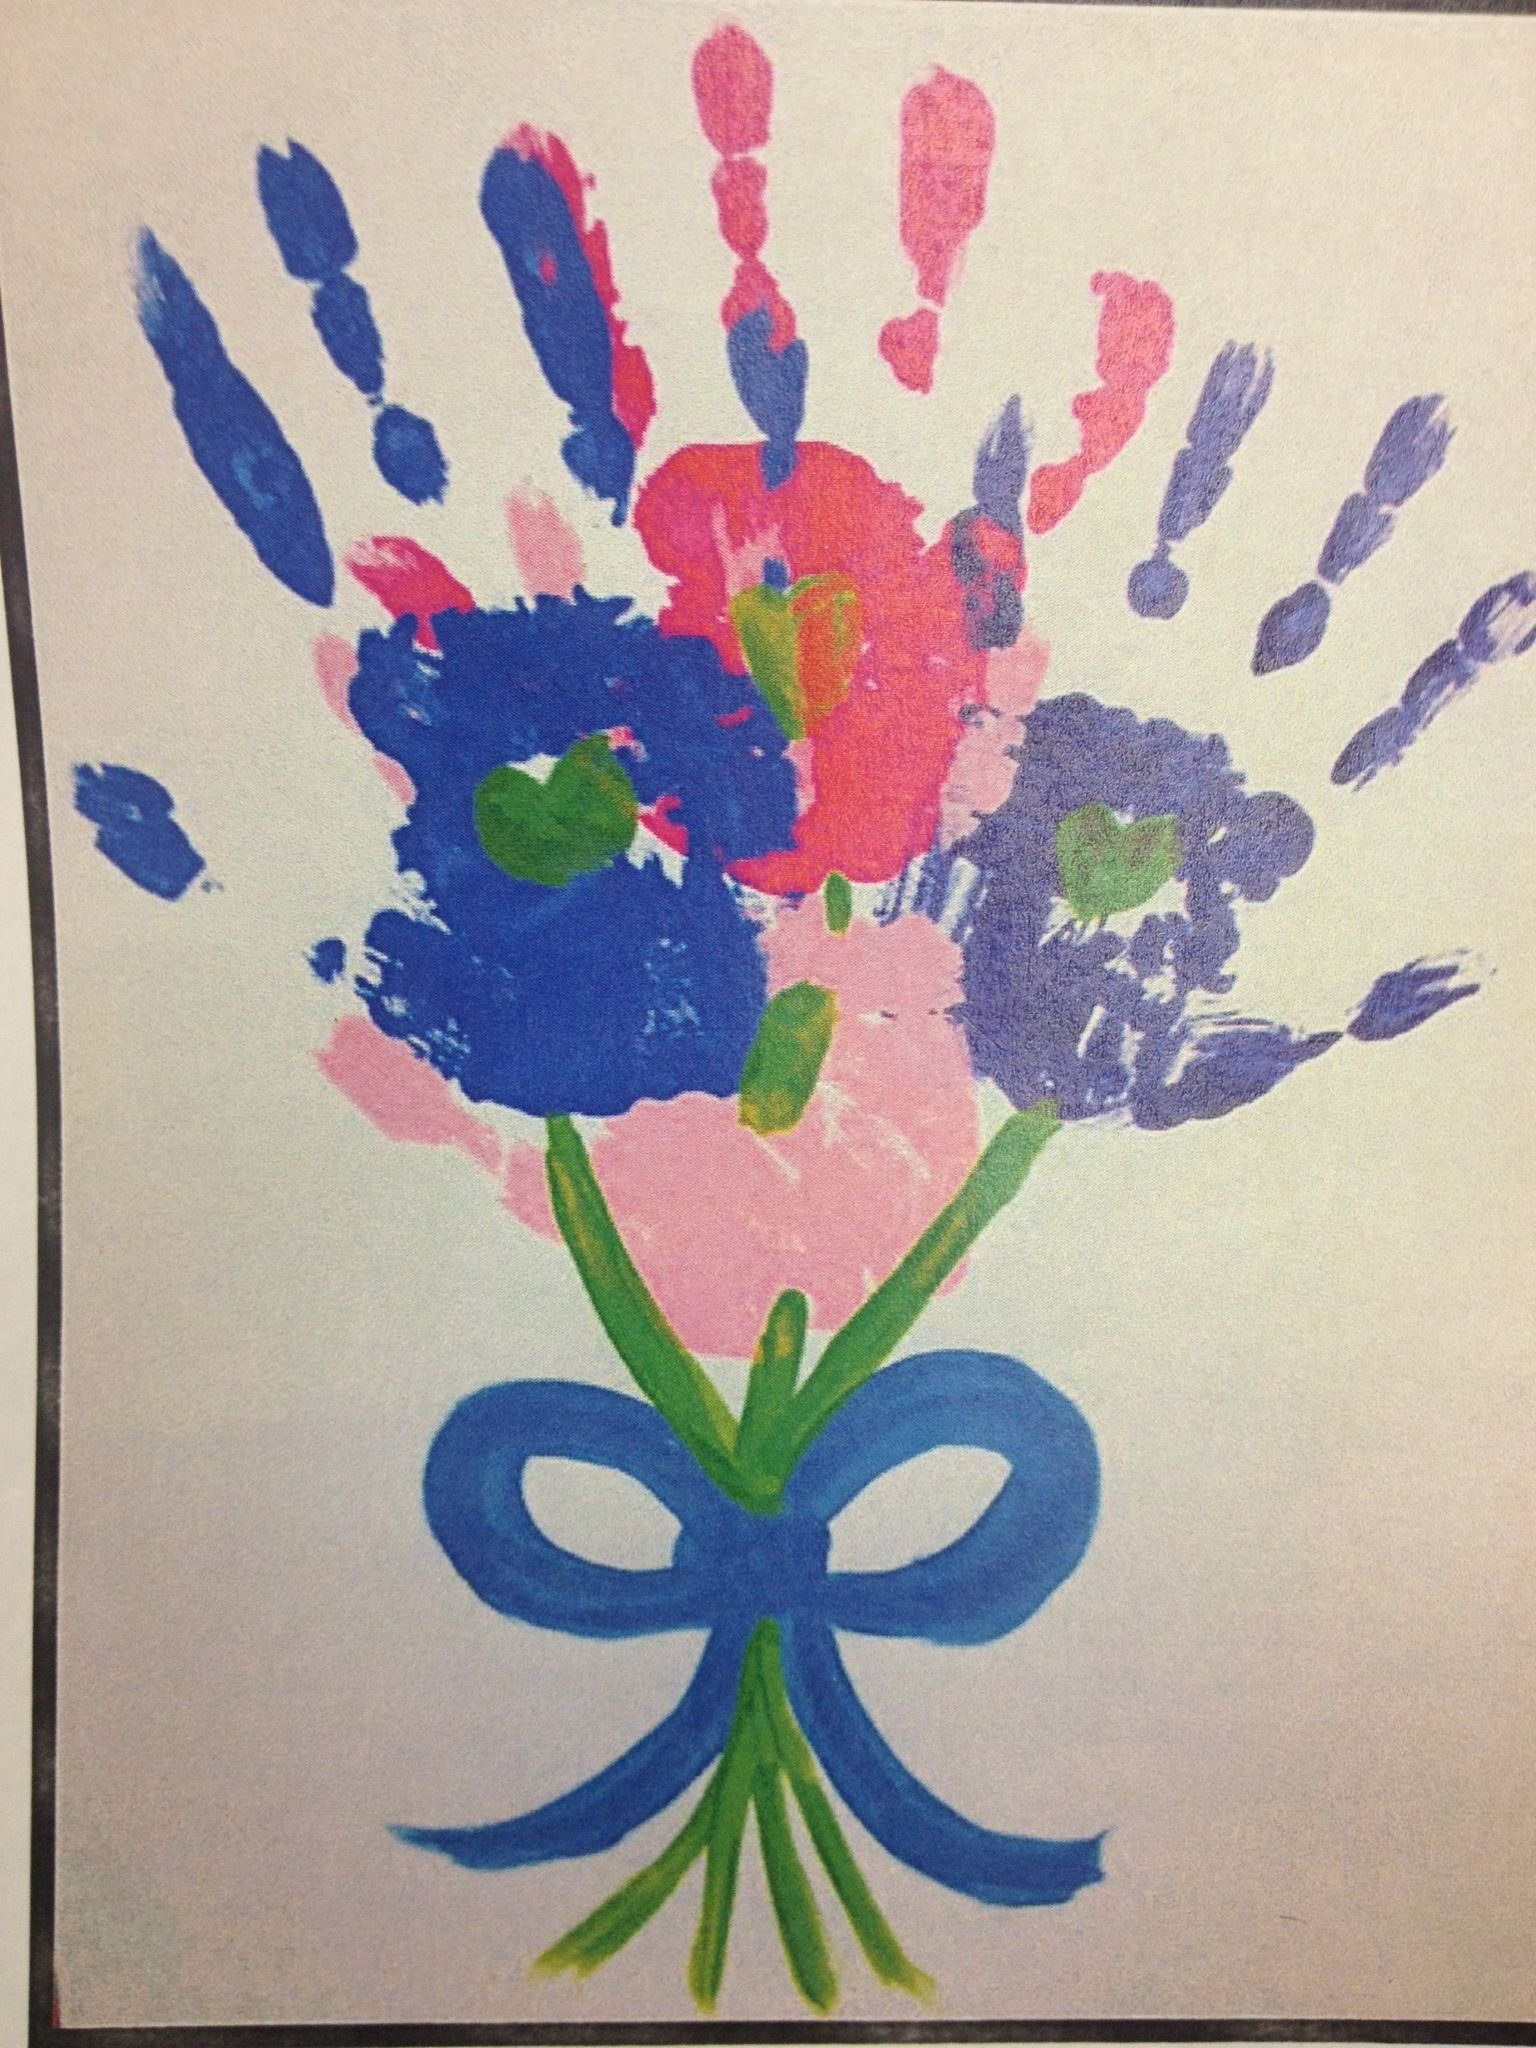 1st meeting craft with all the girls handprints together daisies 1st meeting craft with all the girls handprints together izmirmasajfo